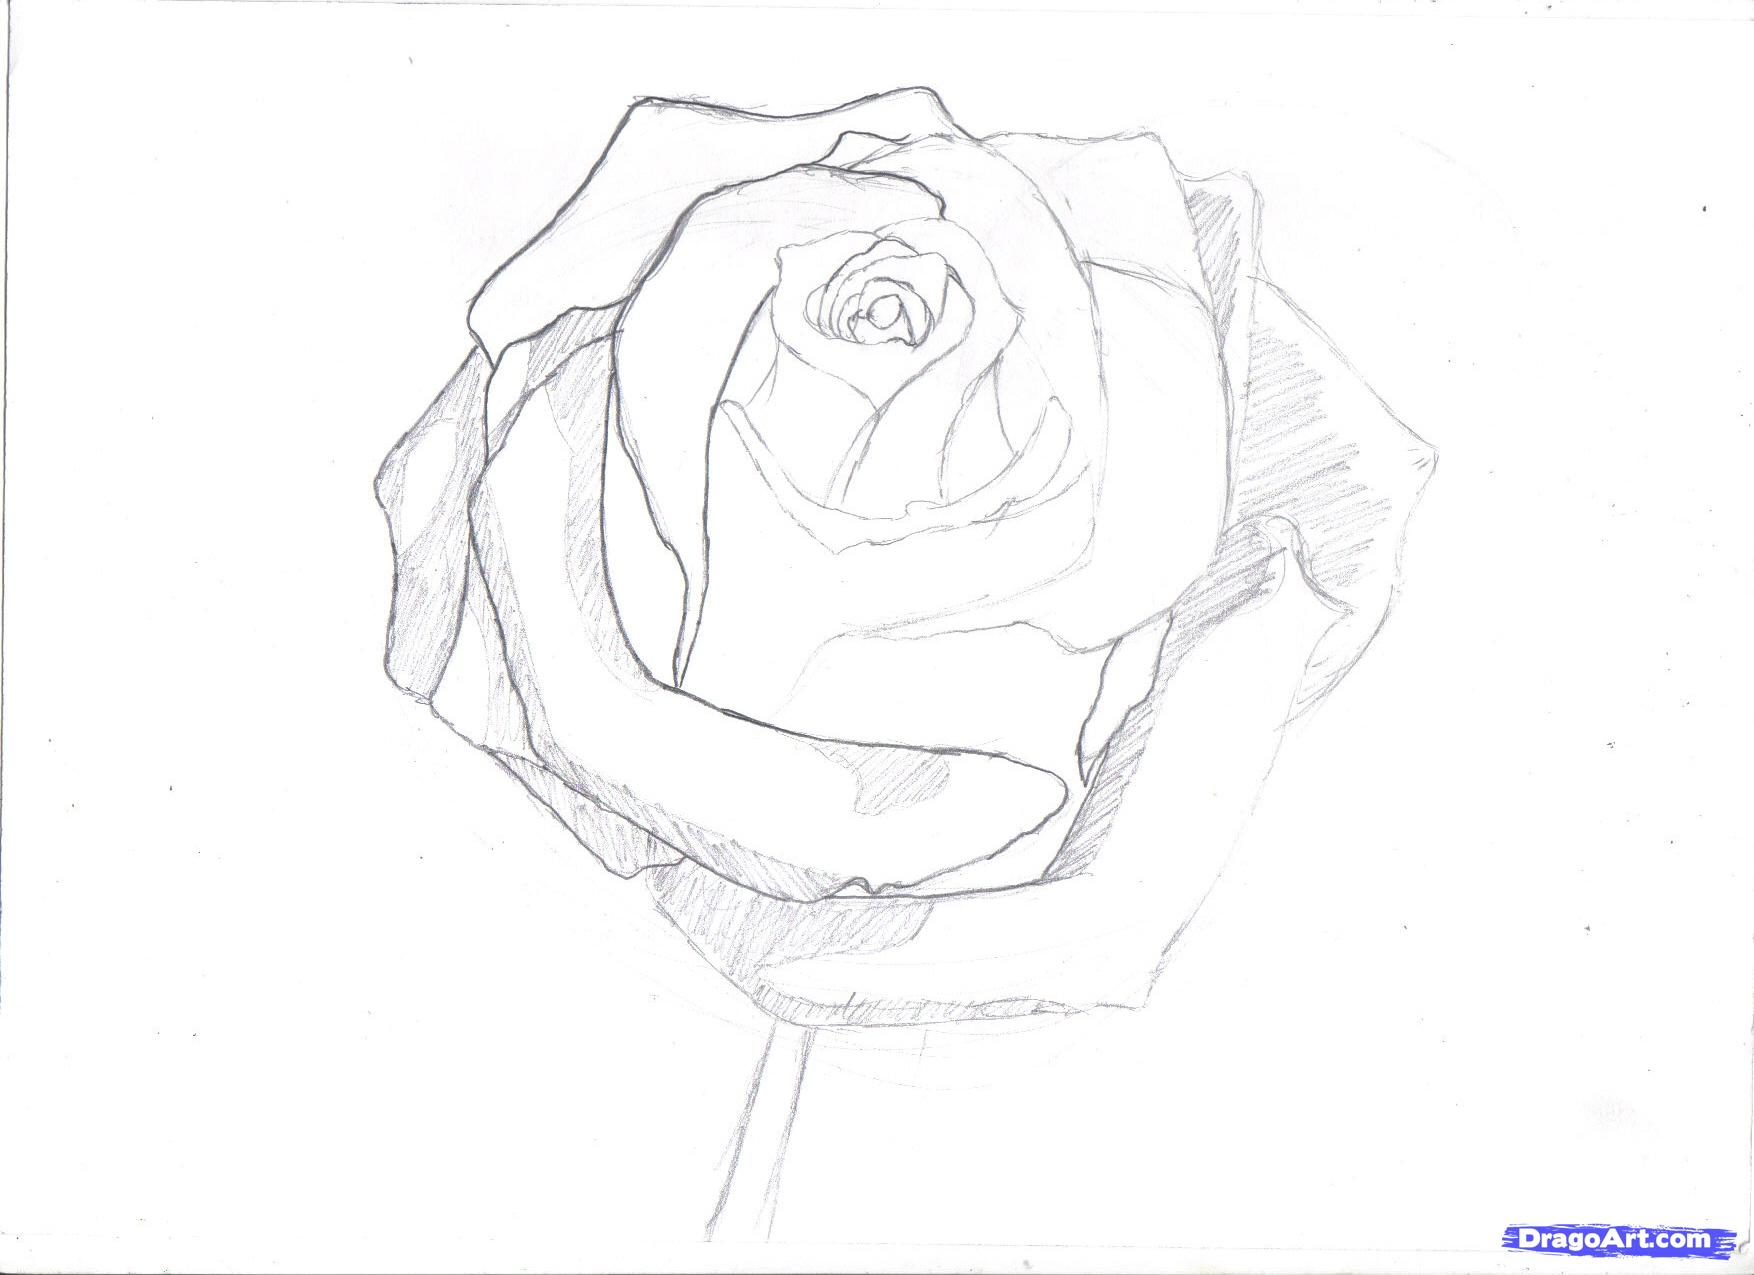 Drawn rose real rose Images Drawings Rose In Outline